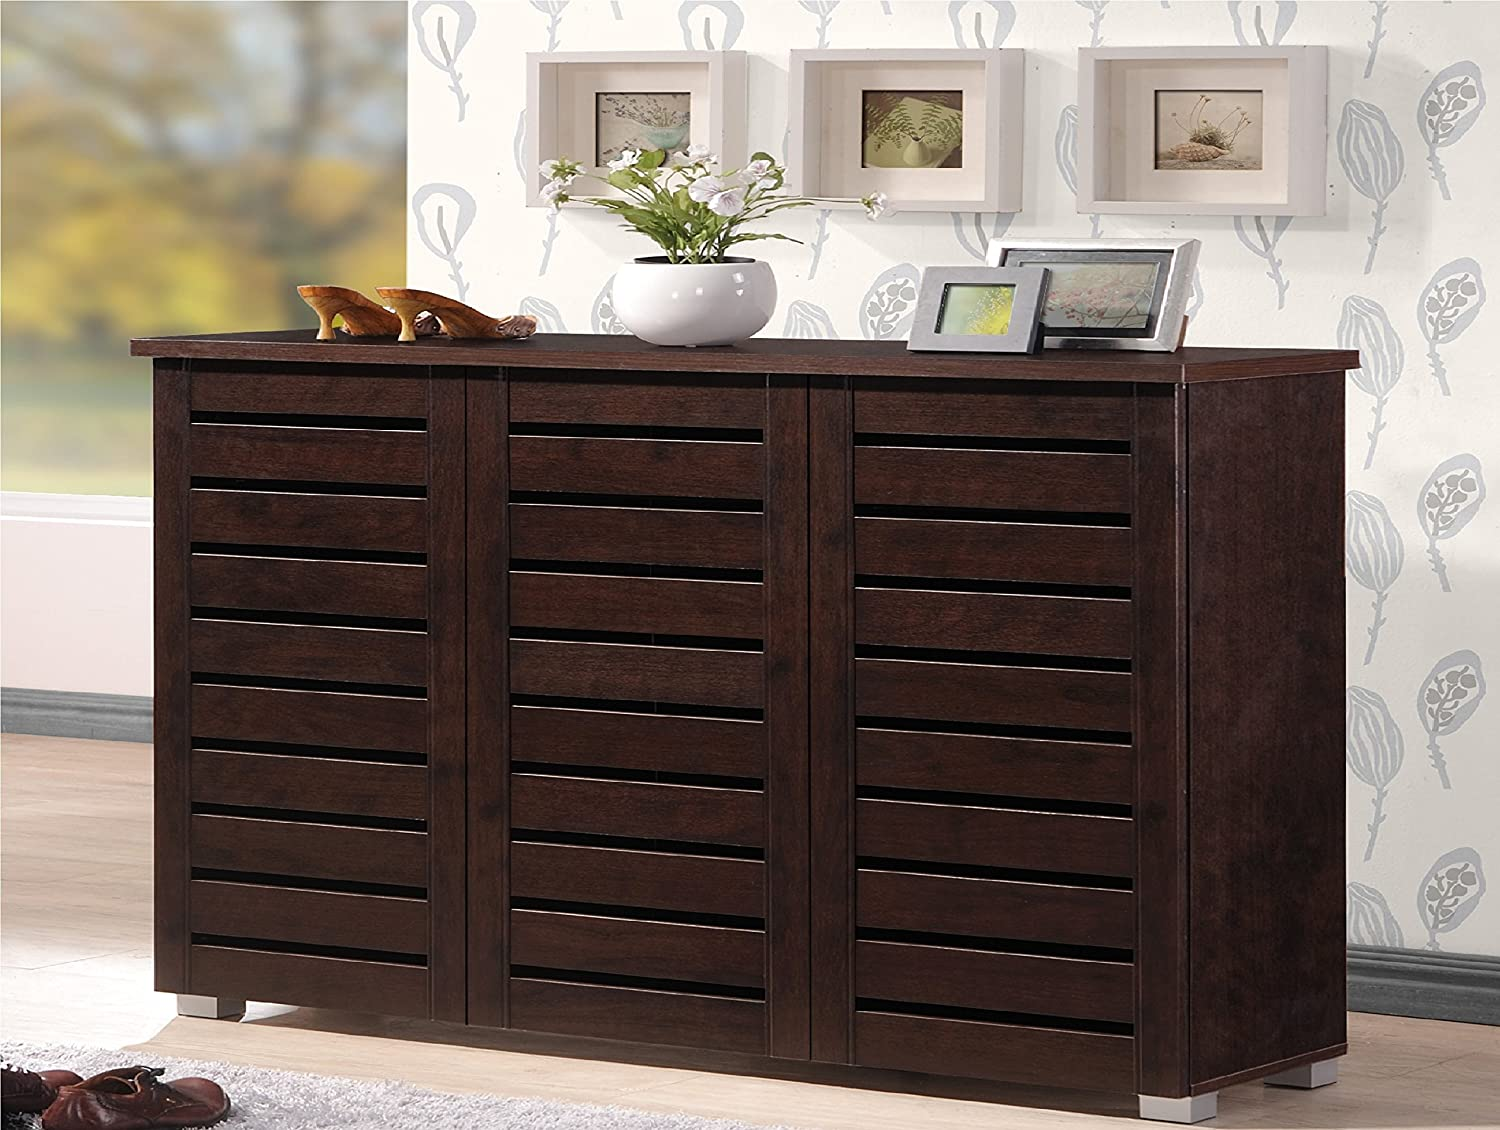 Charmant Amazon.com: Wholesale Interiors Baxton Studio Adalwin Modern And  Contemporary 3 Door Dark Brown Wooden Entryway Shoes Storage Cabinet:  Kitchen U0026 Dining